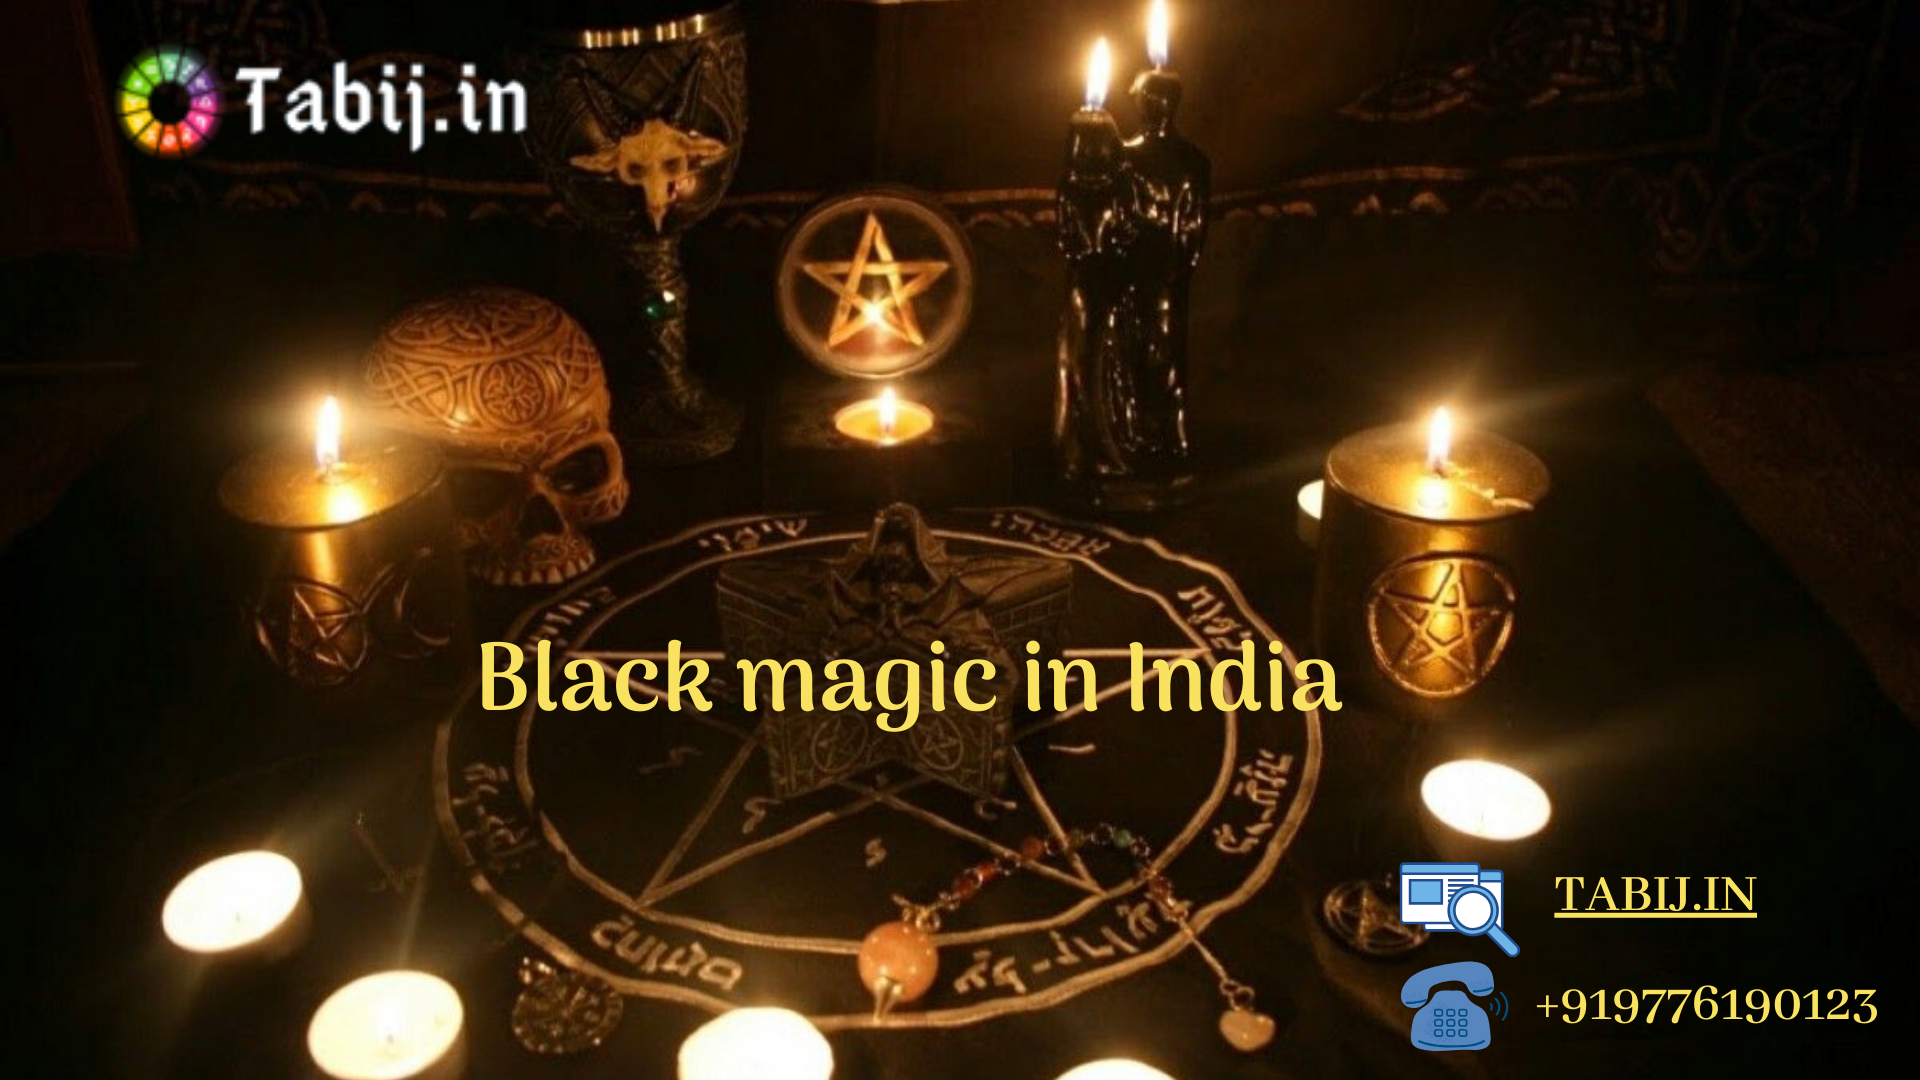 Black-magic-in-India-tabij.in